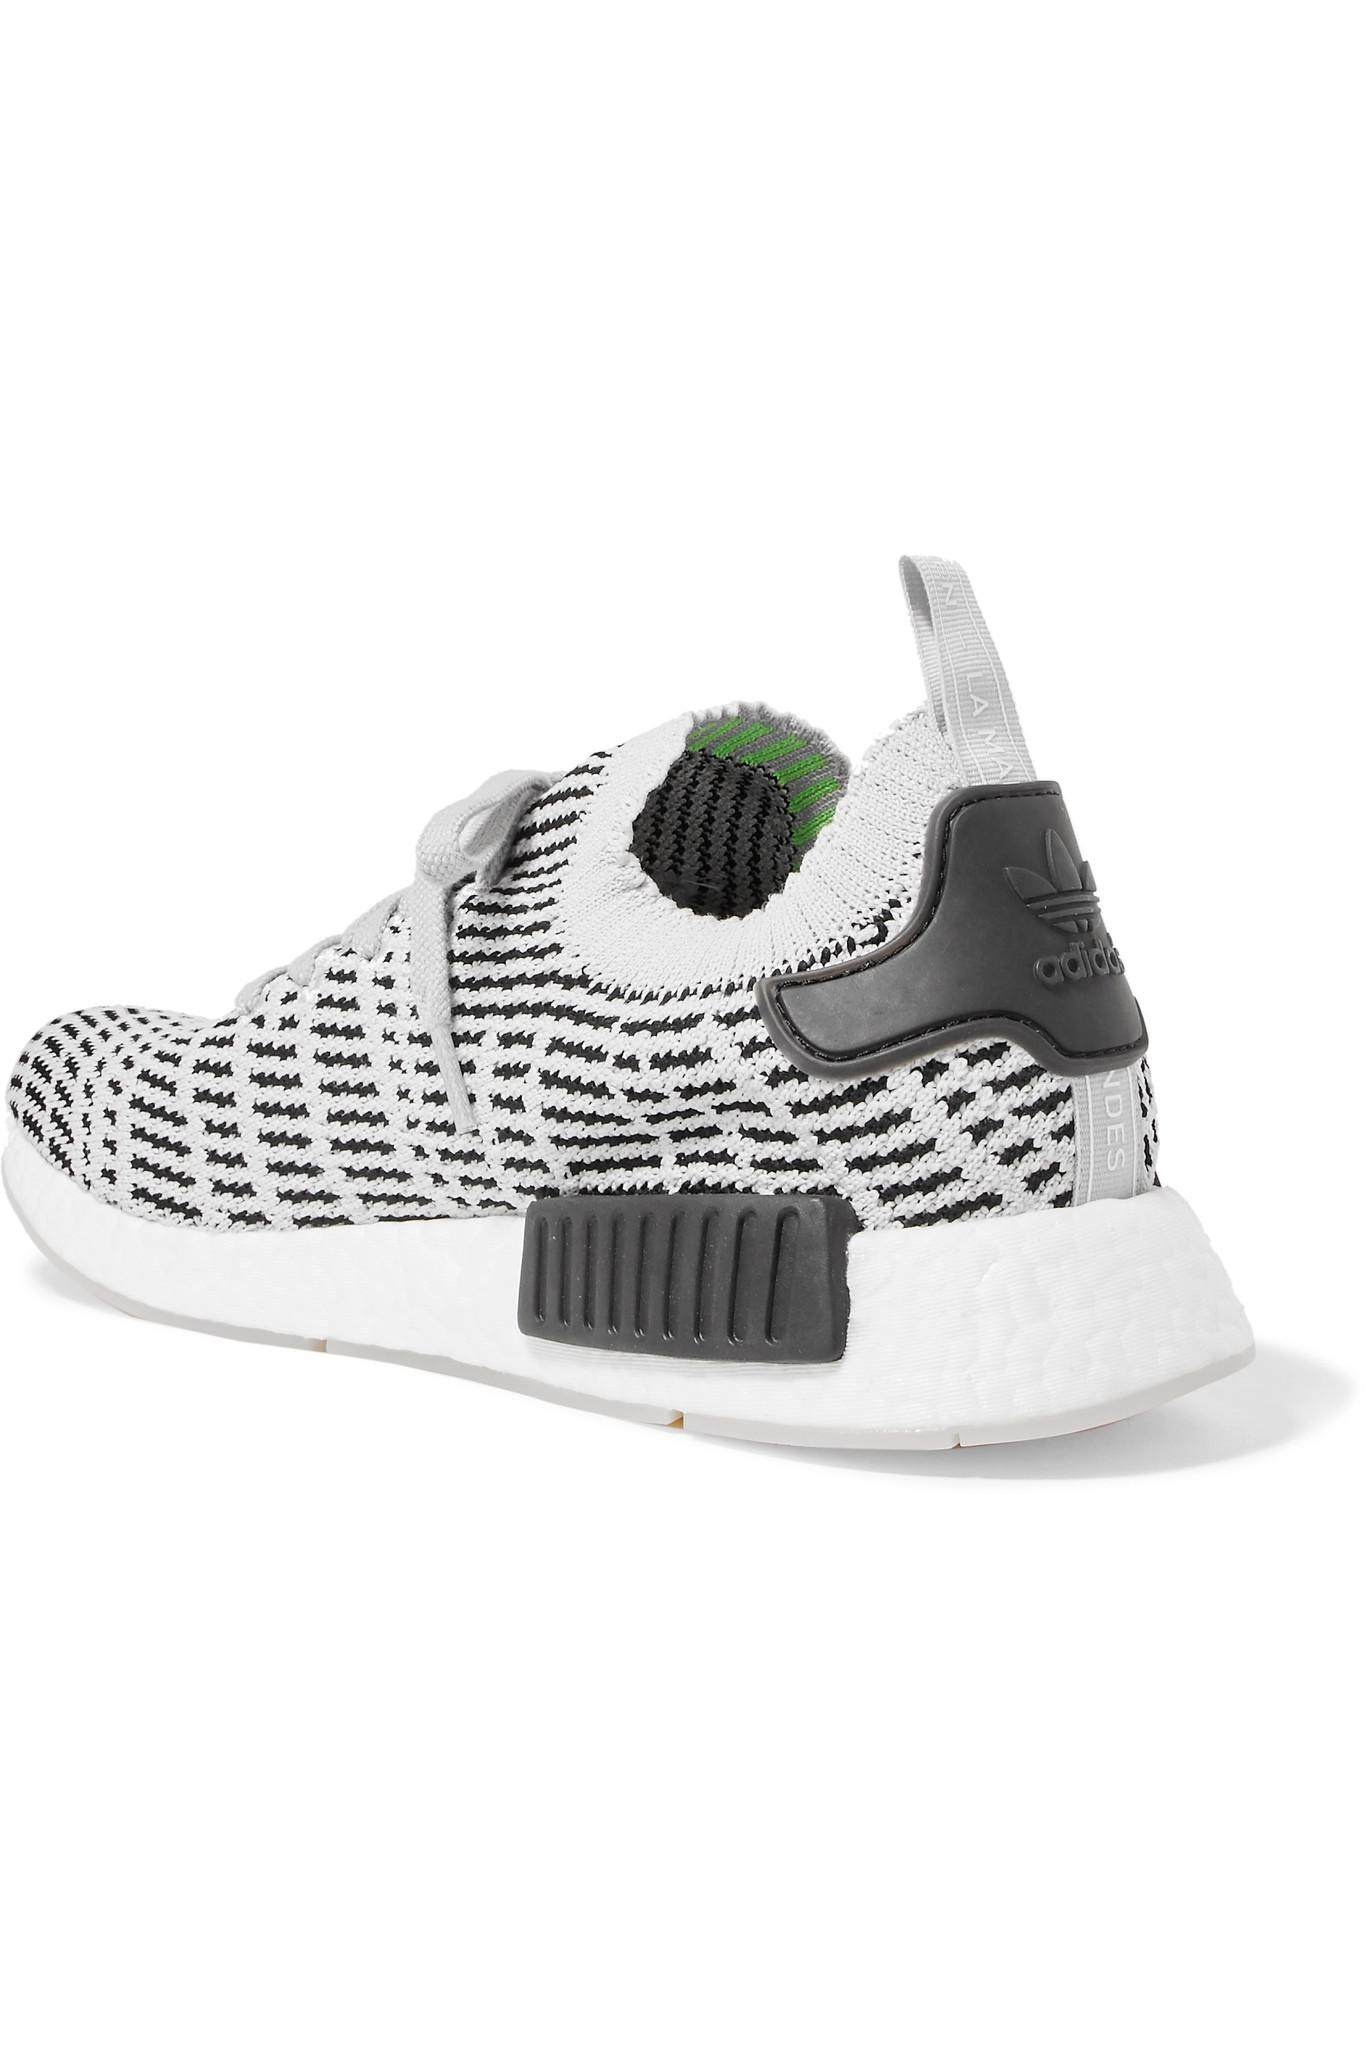 adidas Originals Nmd_r1 Rubber-trimmed Primeknit Sneakers in Light Gray (Grey)